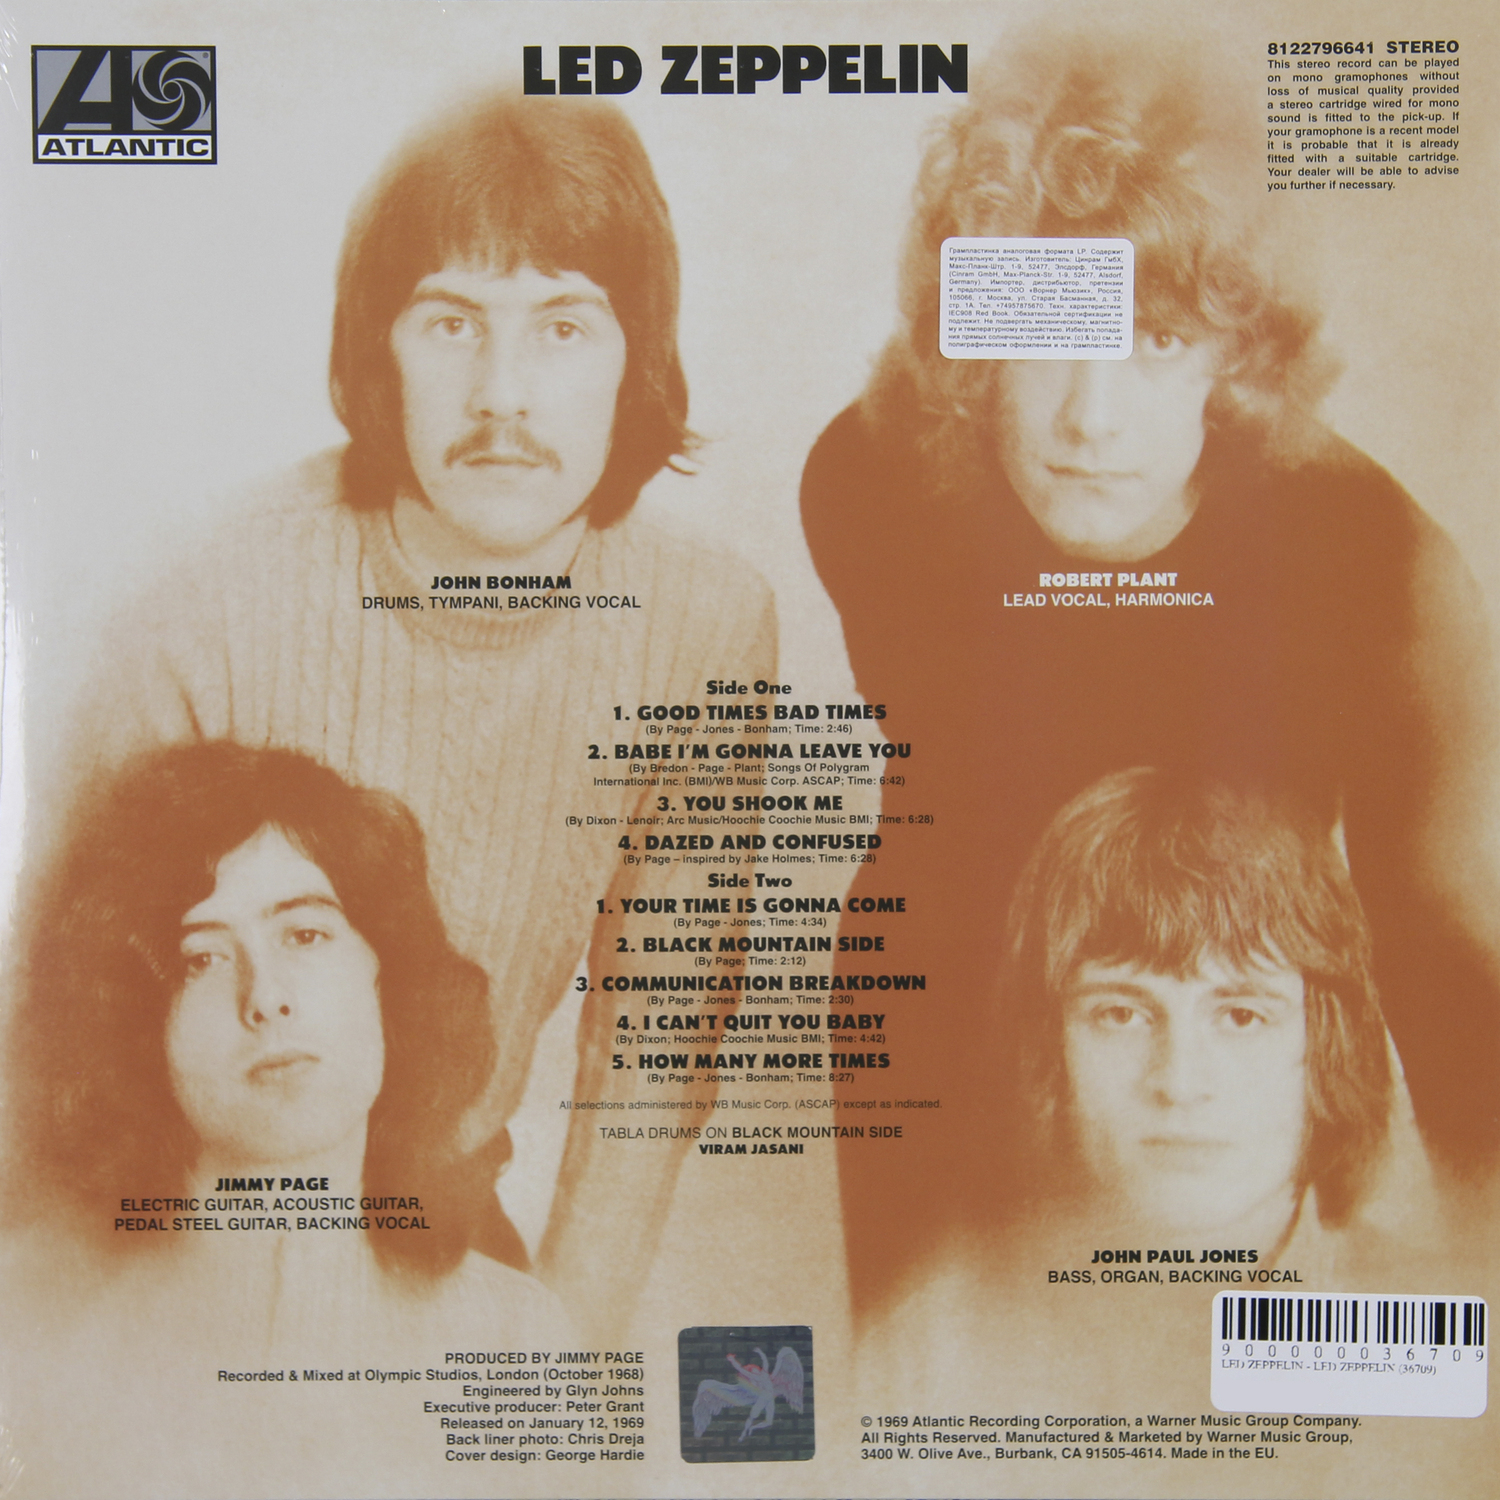 Index Of Led Zeppelin Flac